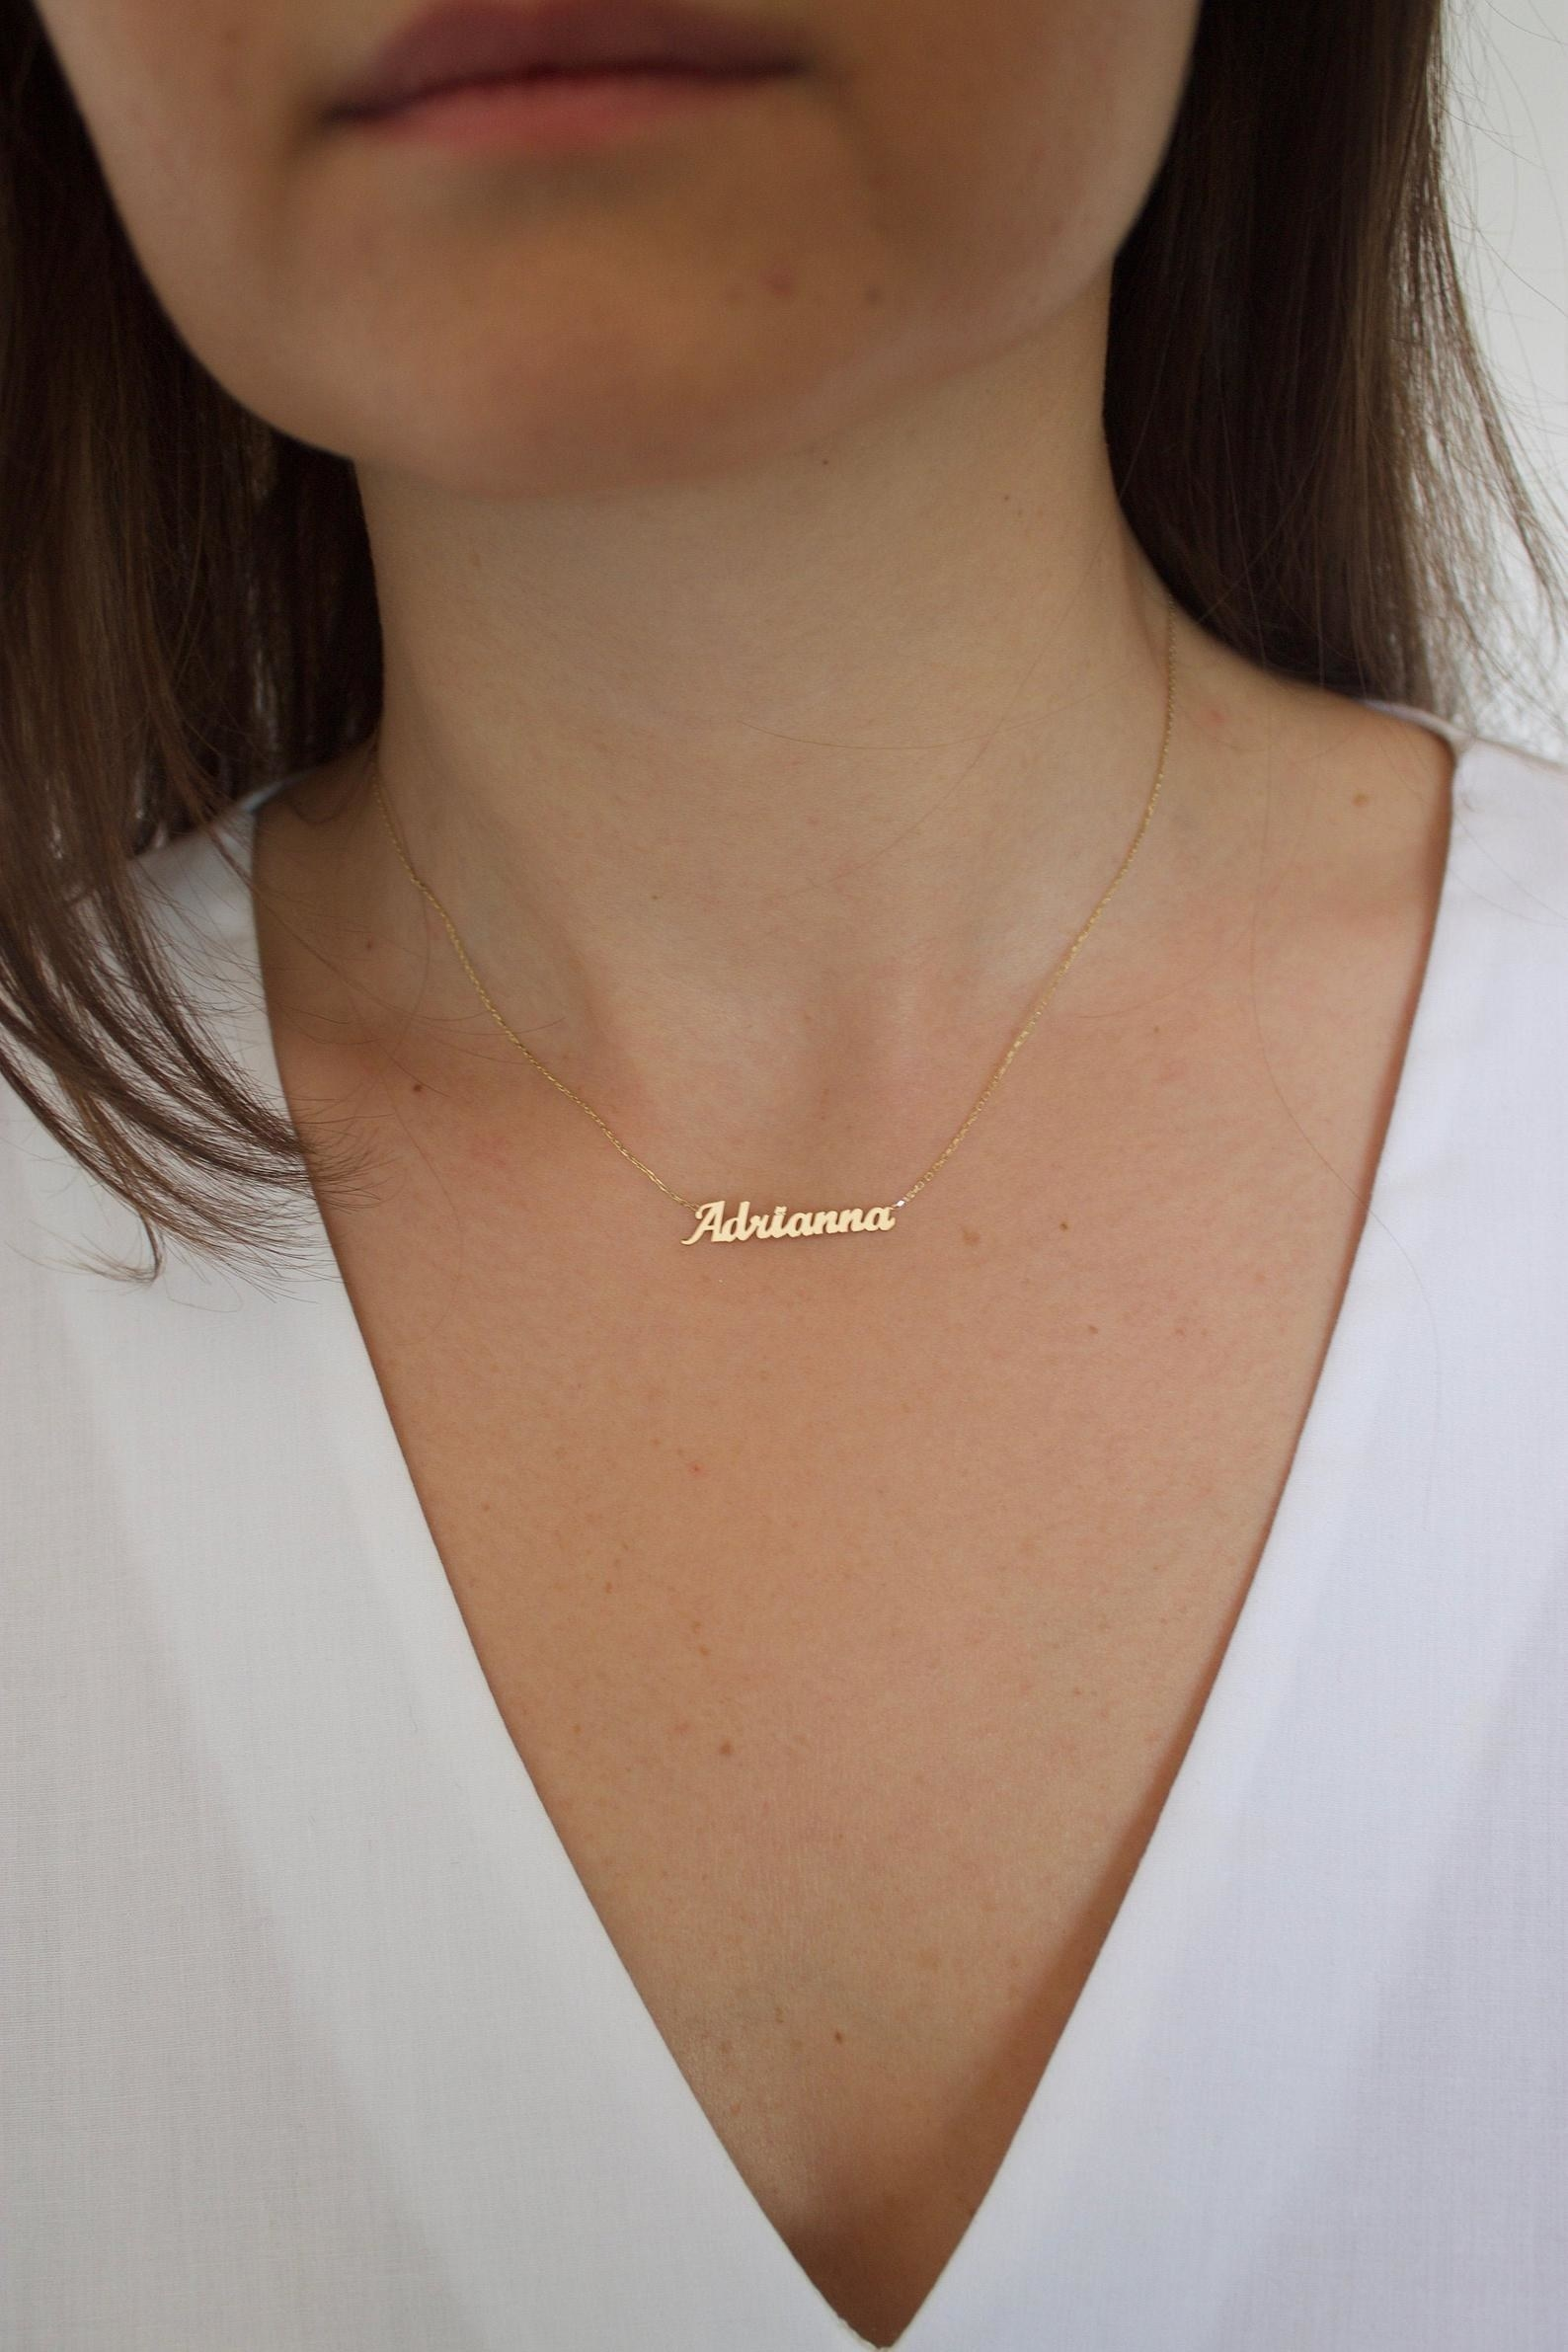 """A person with a dainty gold necklace with the name """"Adrianna"""" on it"""